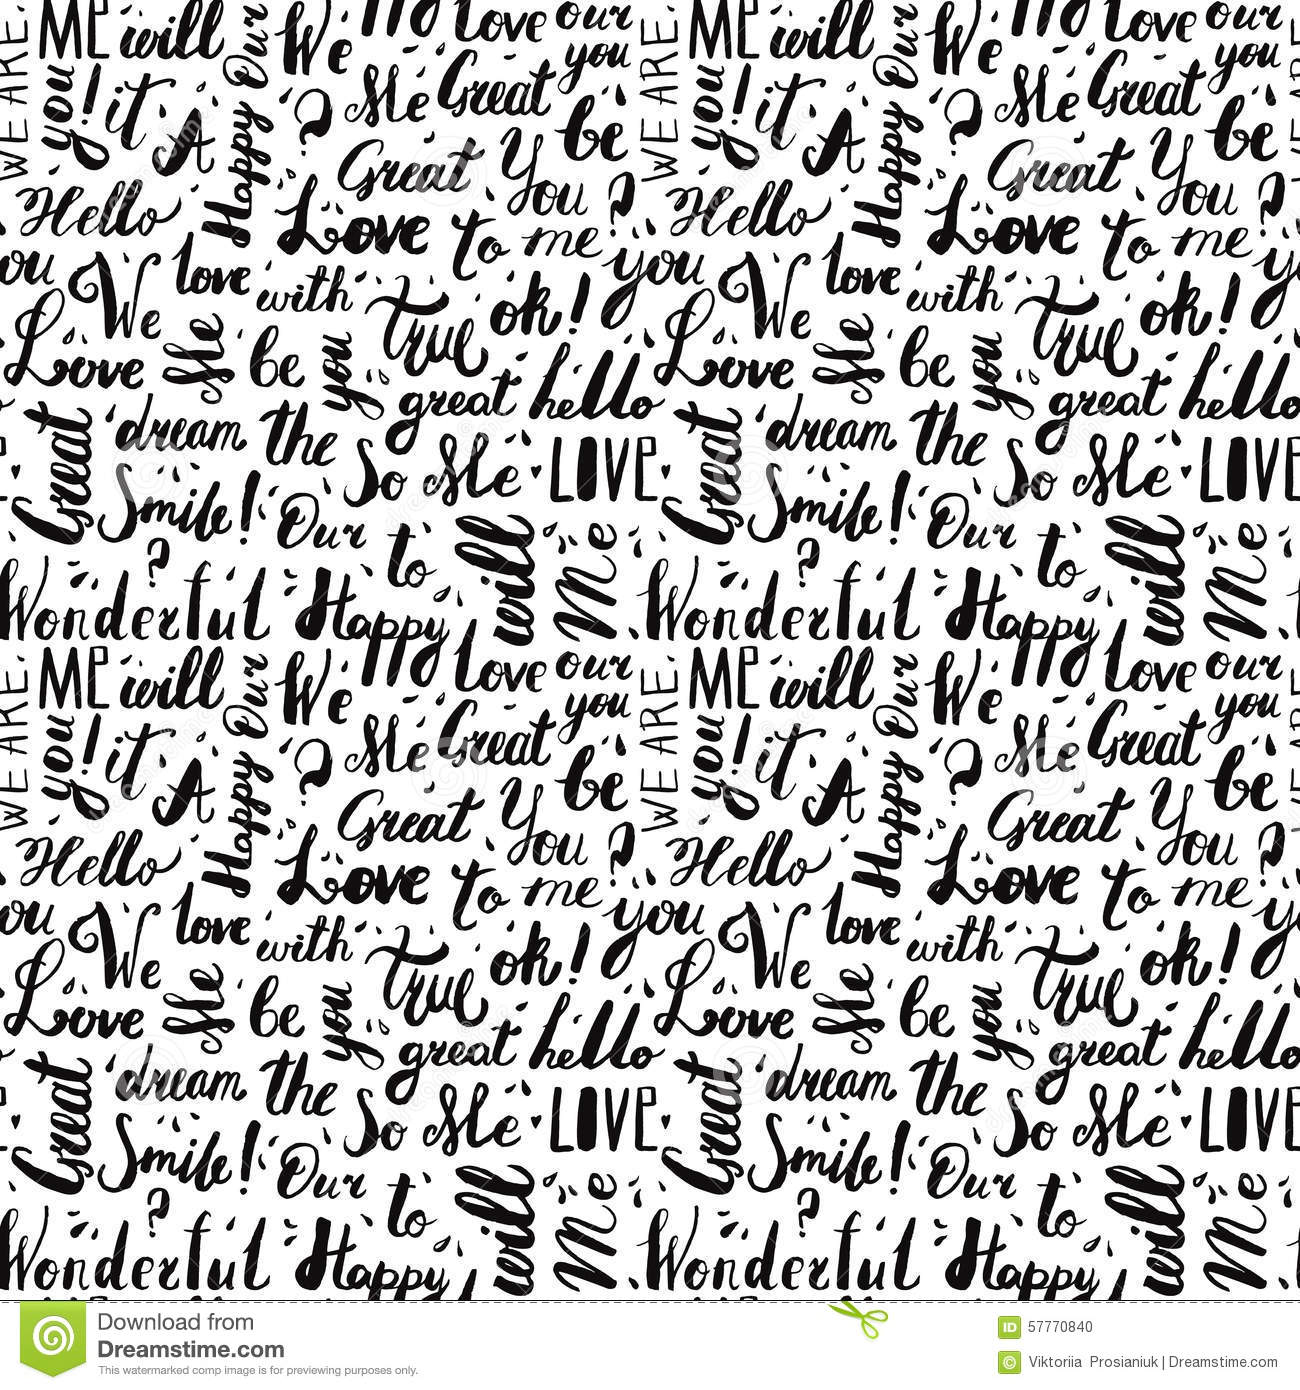 Stock Illustration Handwritten Vintage Ink Words Vector Seamless Pattern Drops Black Letters Lettering Wrapping Paper Design Image57770840 on Handwriting Paper